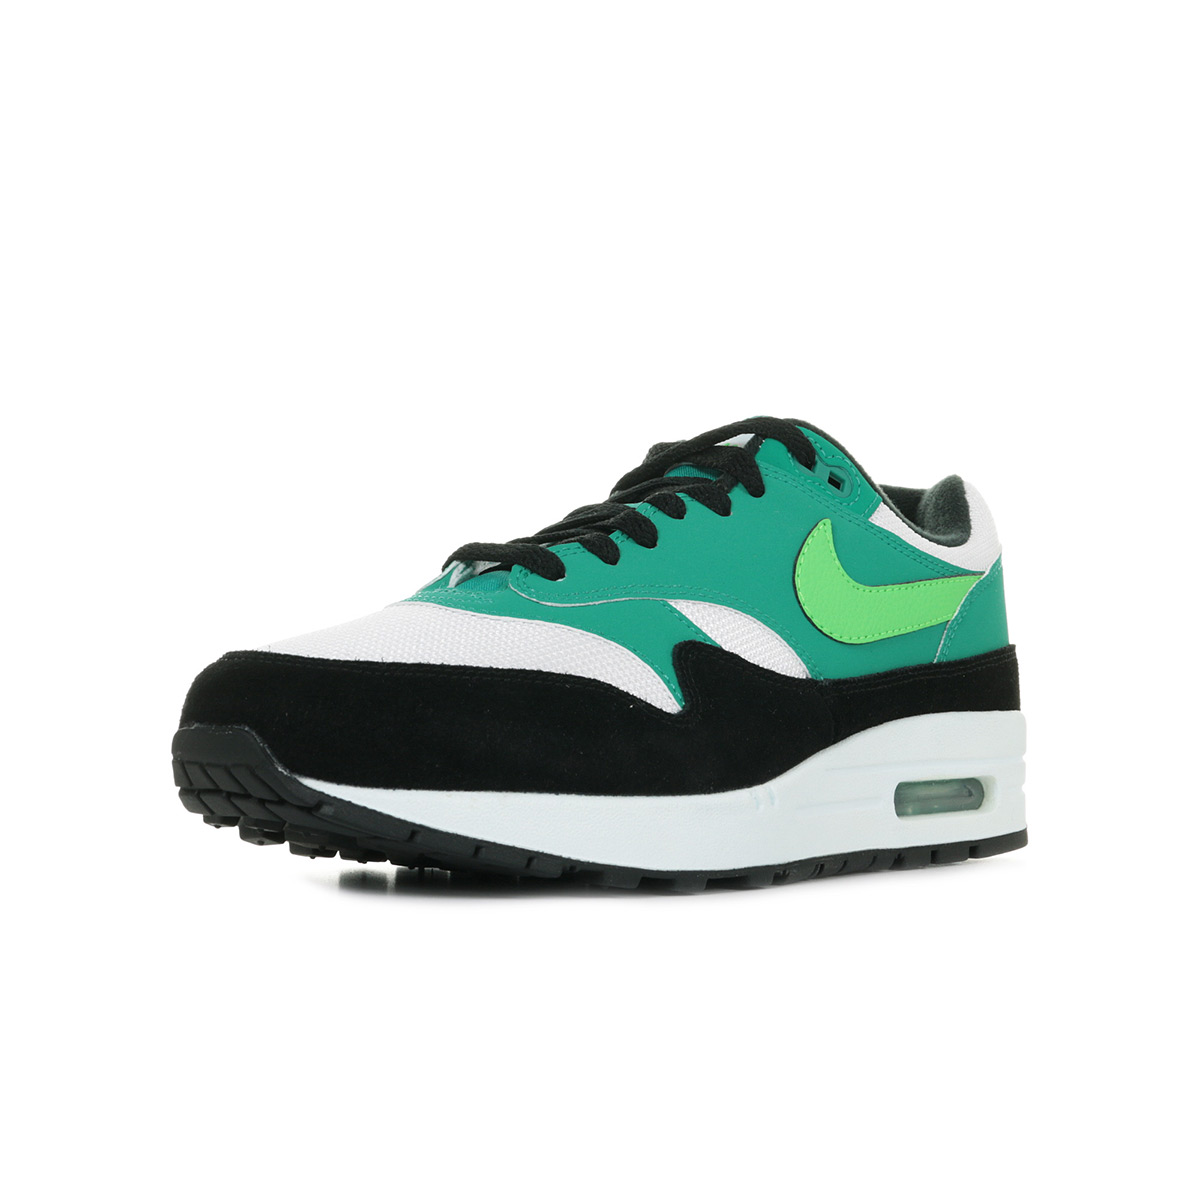 buy exquisite style wholesale dealer Nike Air Max 1